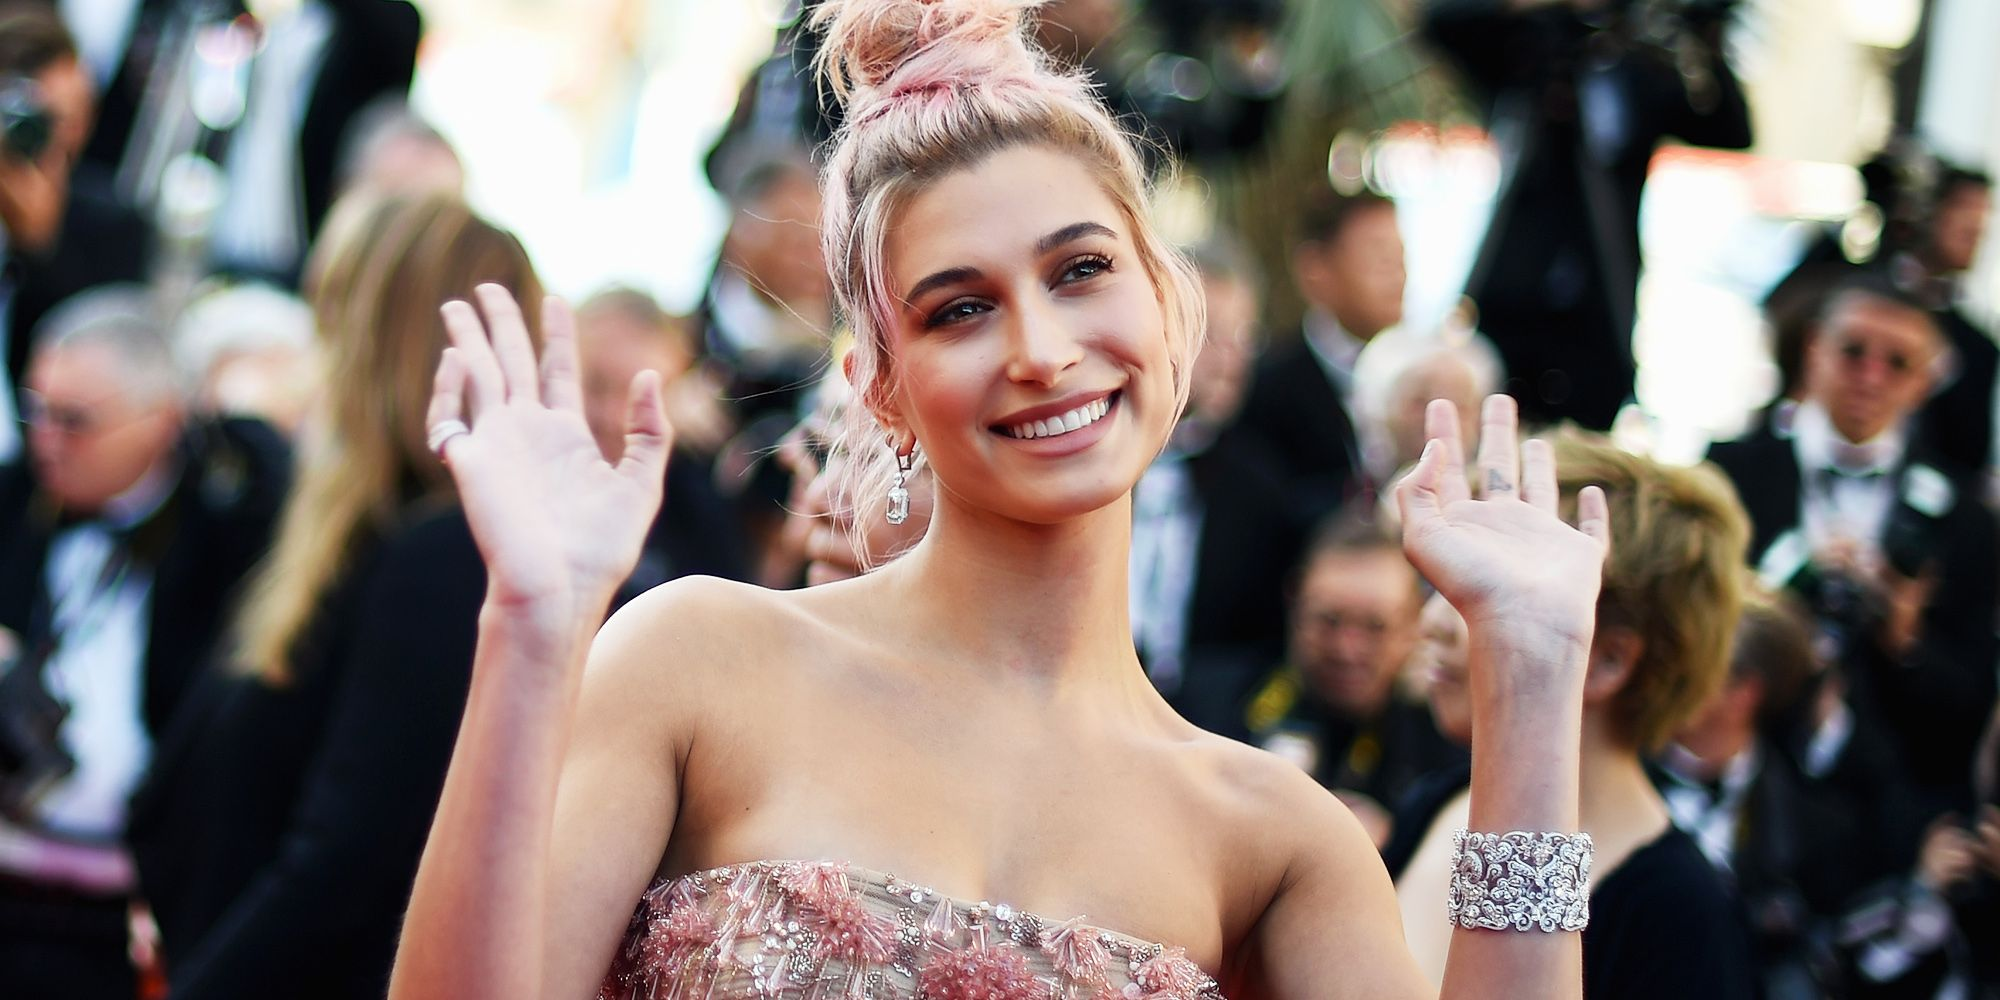 hailey baldwin at the 71st annual cannes film festival